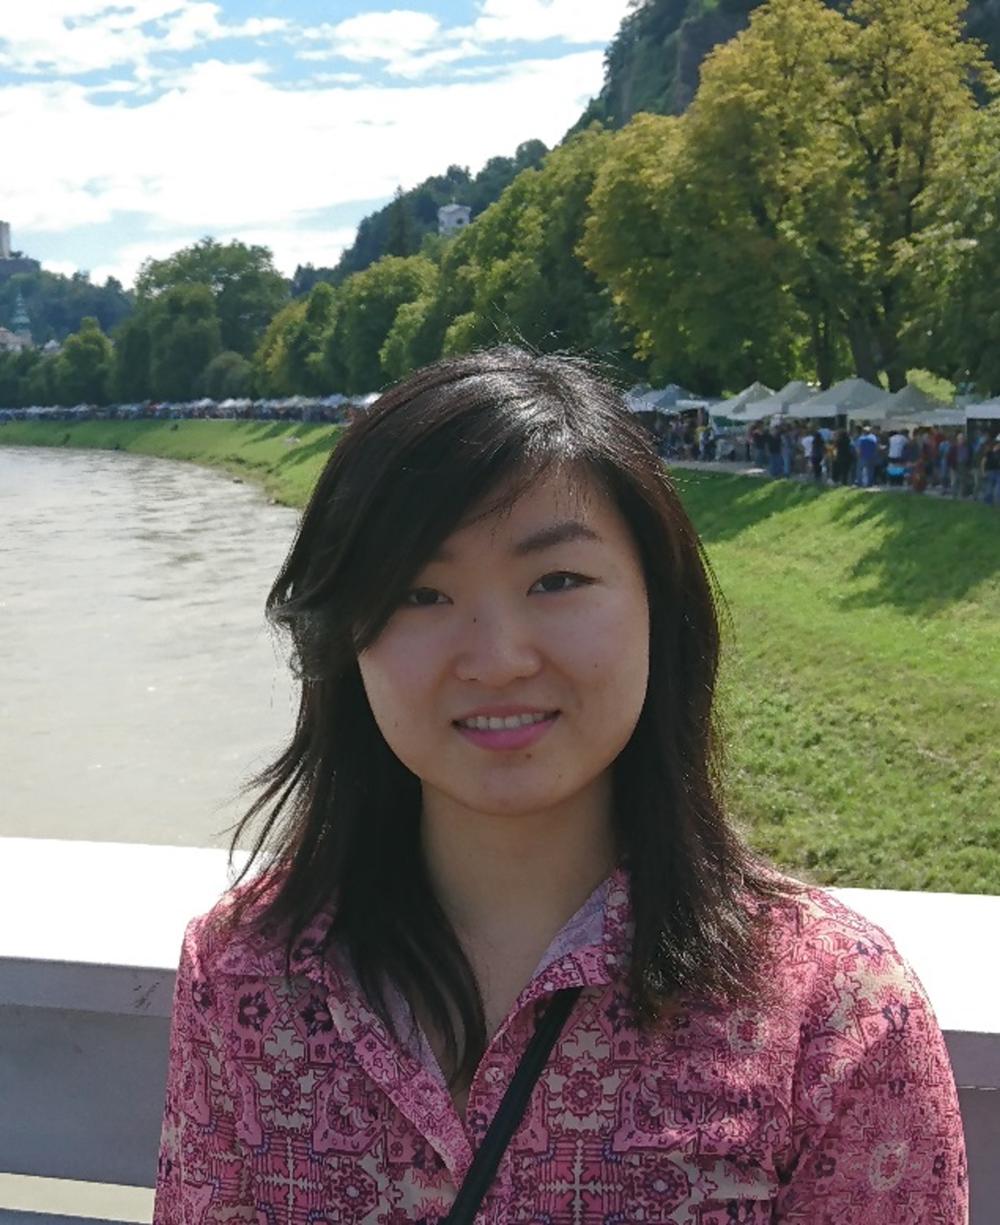 """Stella Wang - """"I am a graduate student in the Cell and Molecular Biology program. I completed my B.S. in bioengineering at Caltech in 2016 and joined the lab in 2017. I am interested in improving the capabilities of DNA rational design in cellular, material, and information processing applications. Currently, I am developing detailed nearest neighbor models for nucleic acid variants using high-throughput means. I am also working on improving strand displacement mechanisms in cellular contexts."""""""